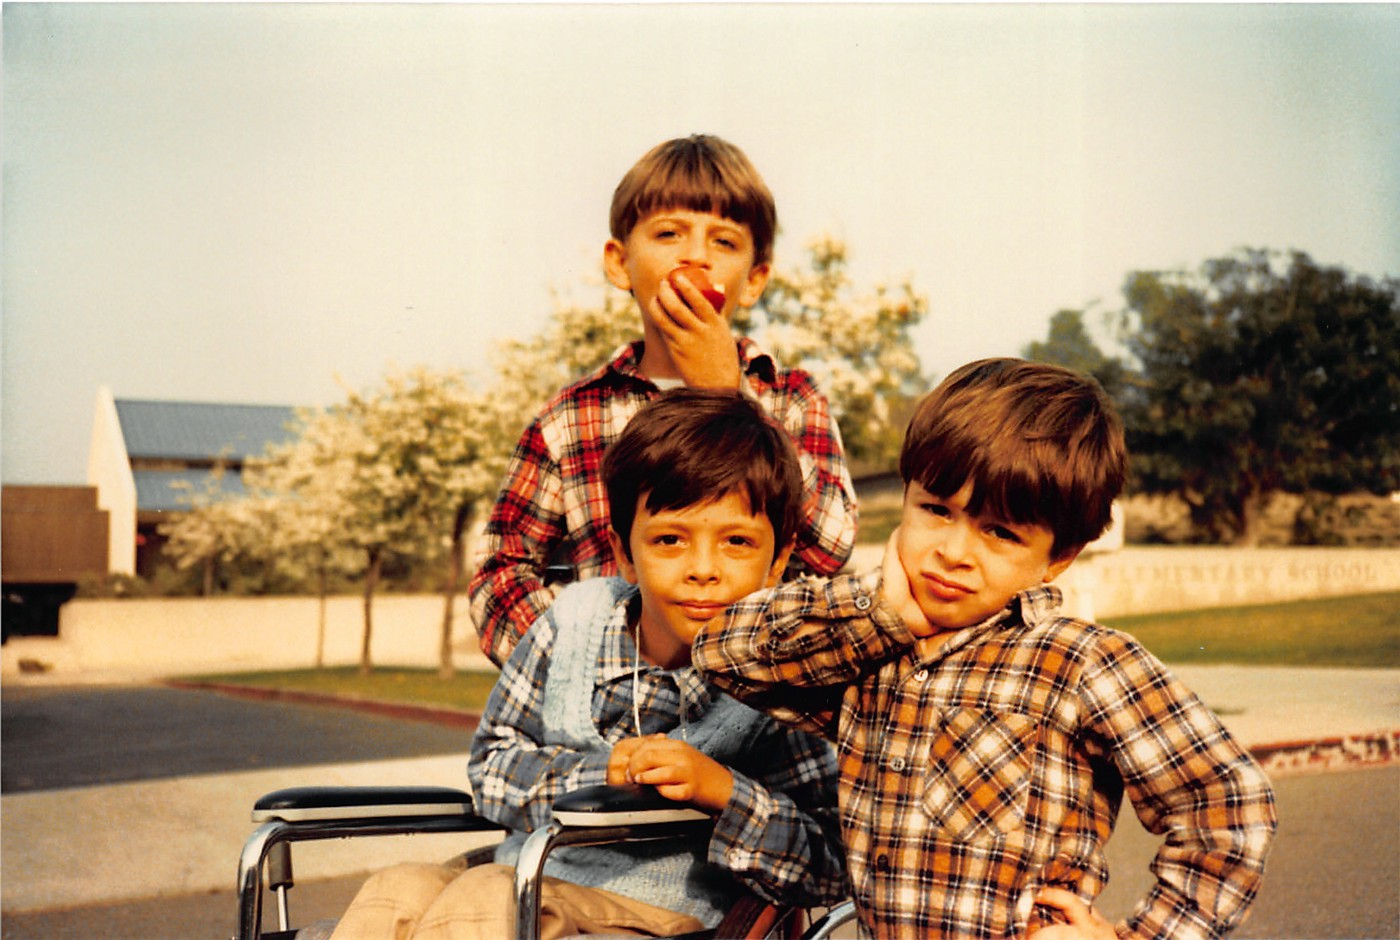 Description: This image shows three brothers wearing plaid shirts. The boy in the middle sits in a wheelchair in front of Roy